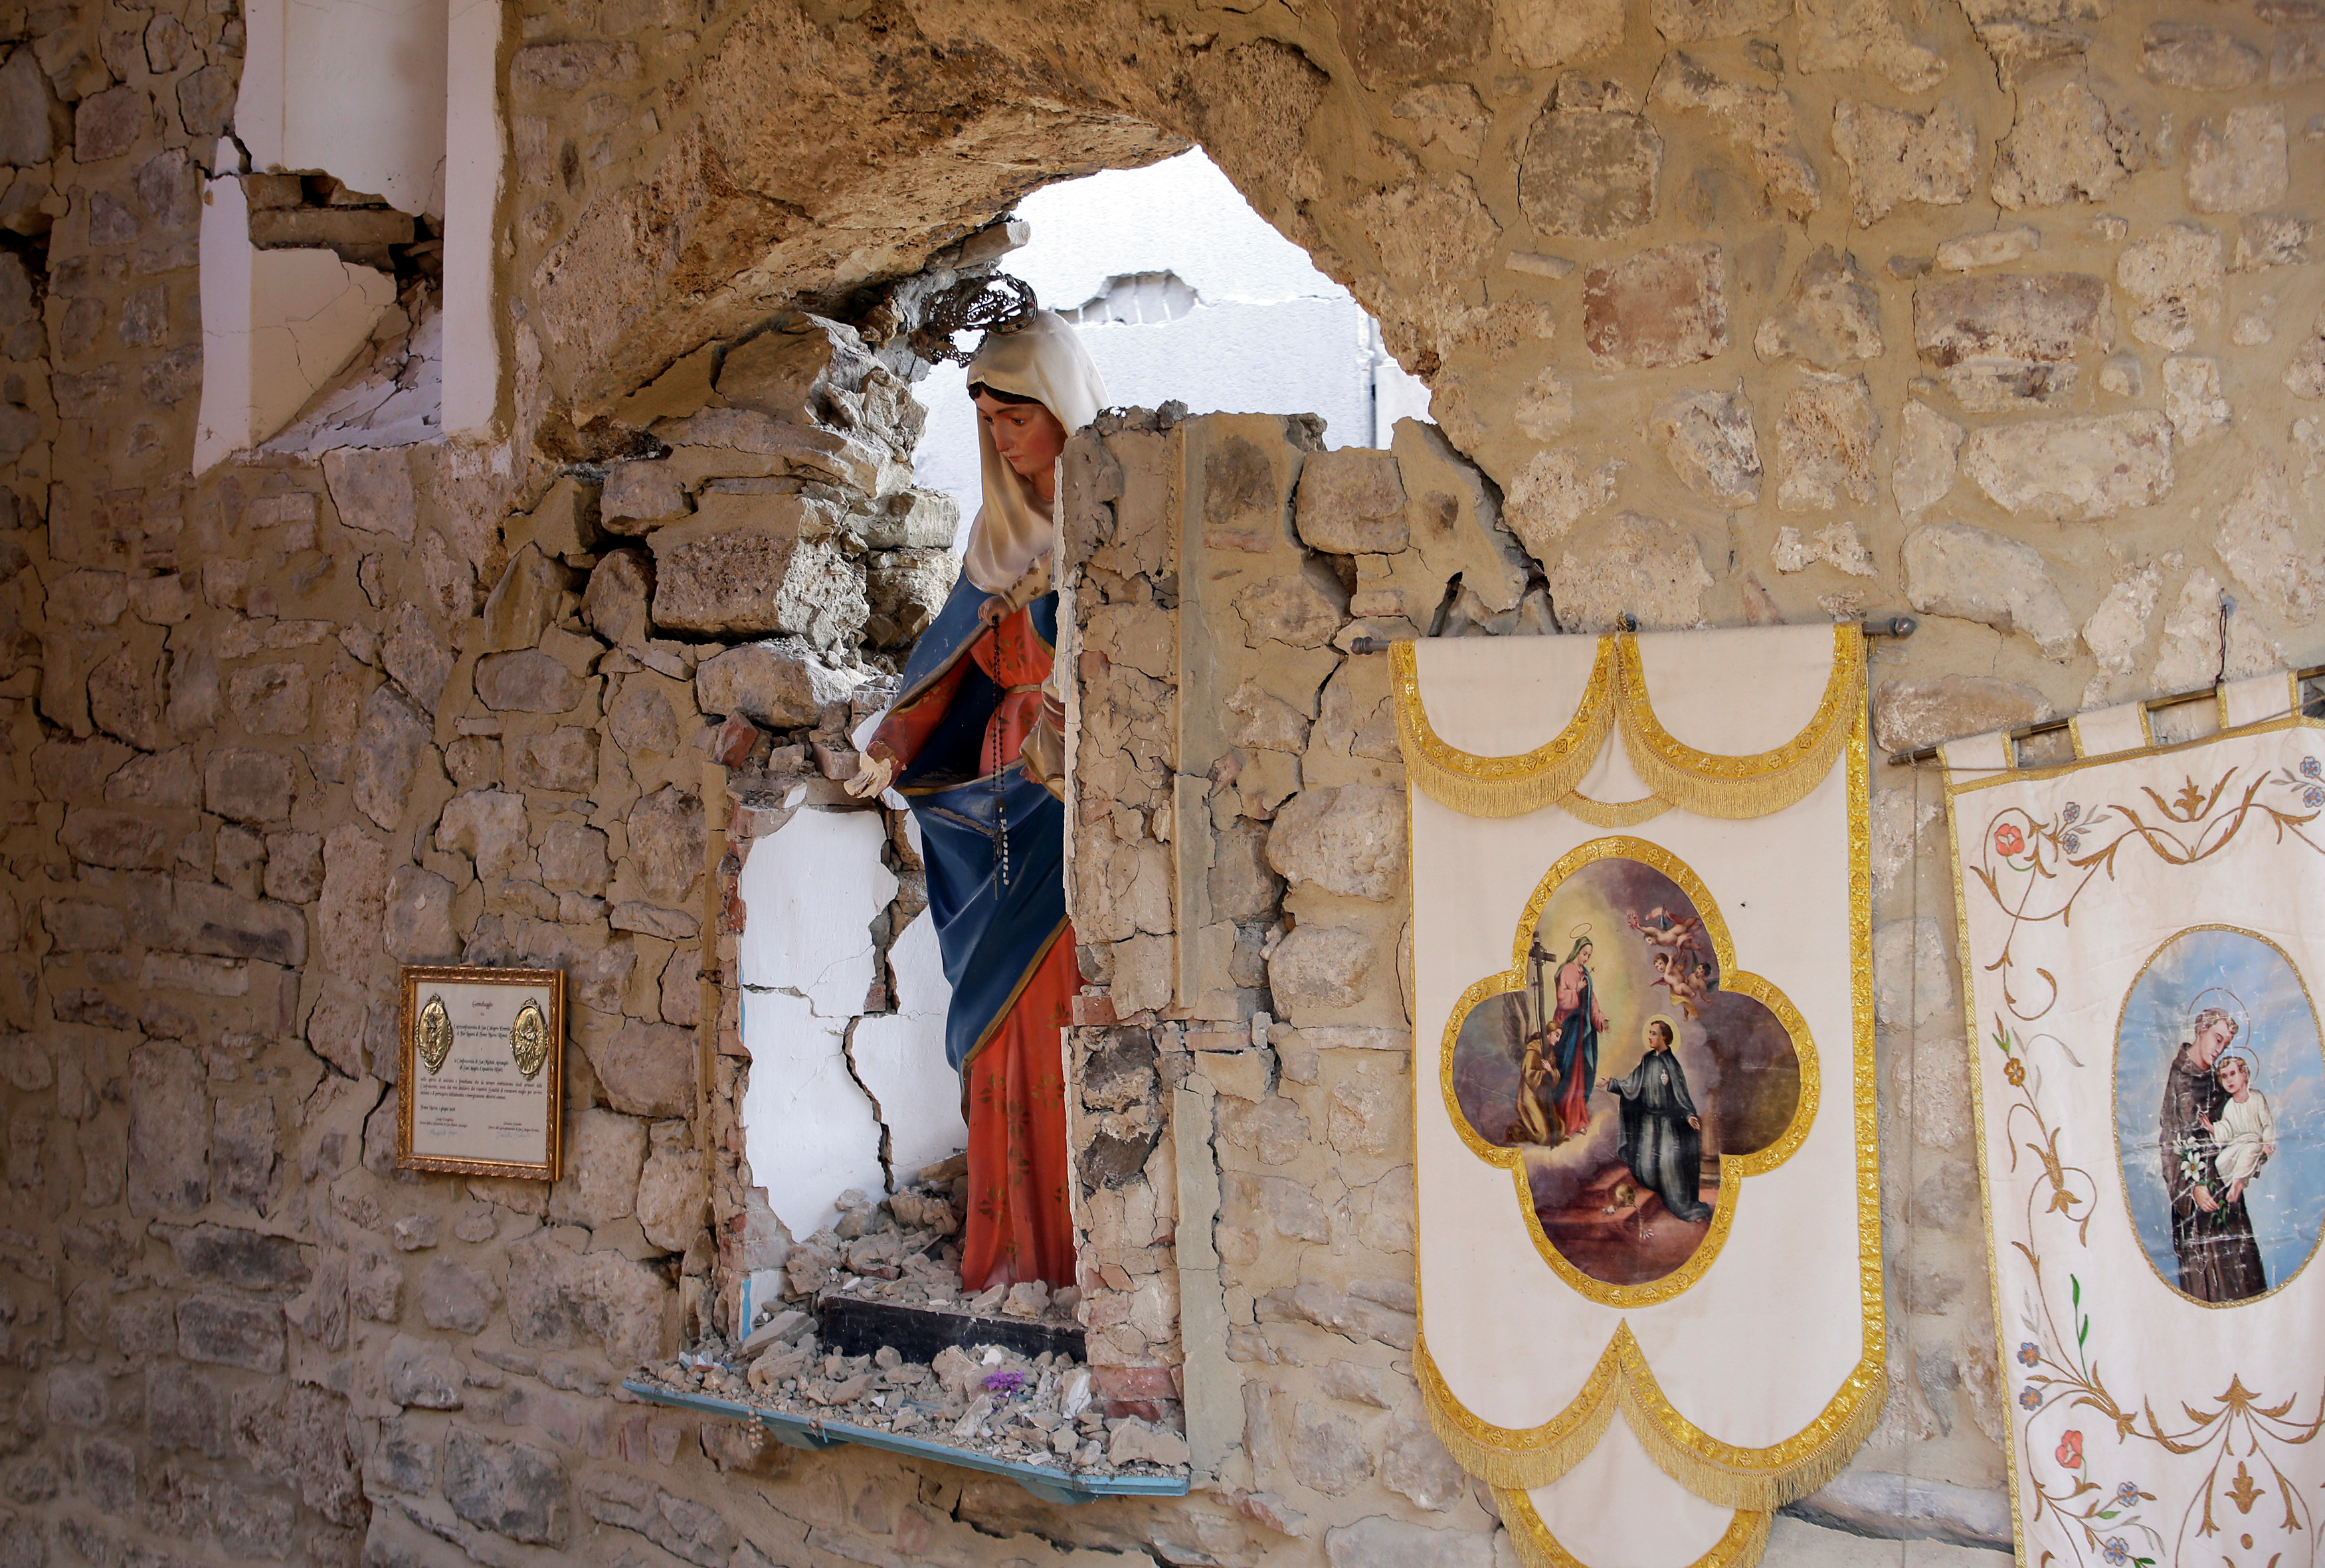 A Virgin Mary statue is seen in cemetery following an earthquake at Sant' Angelo near Amatrice, central Italy, Aug. 26, 2016.